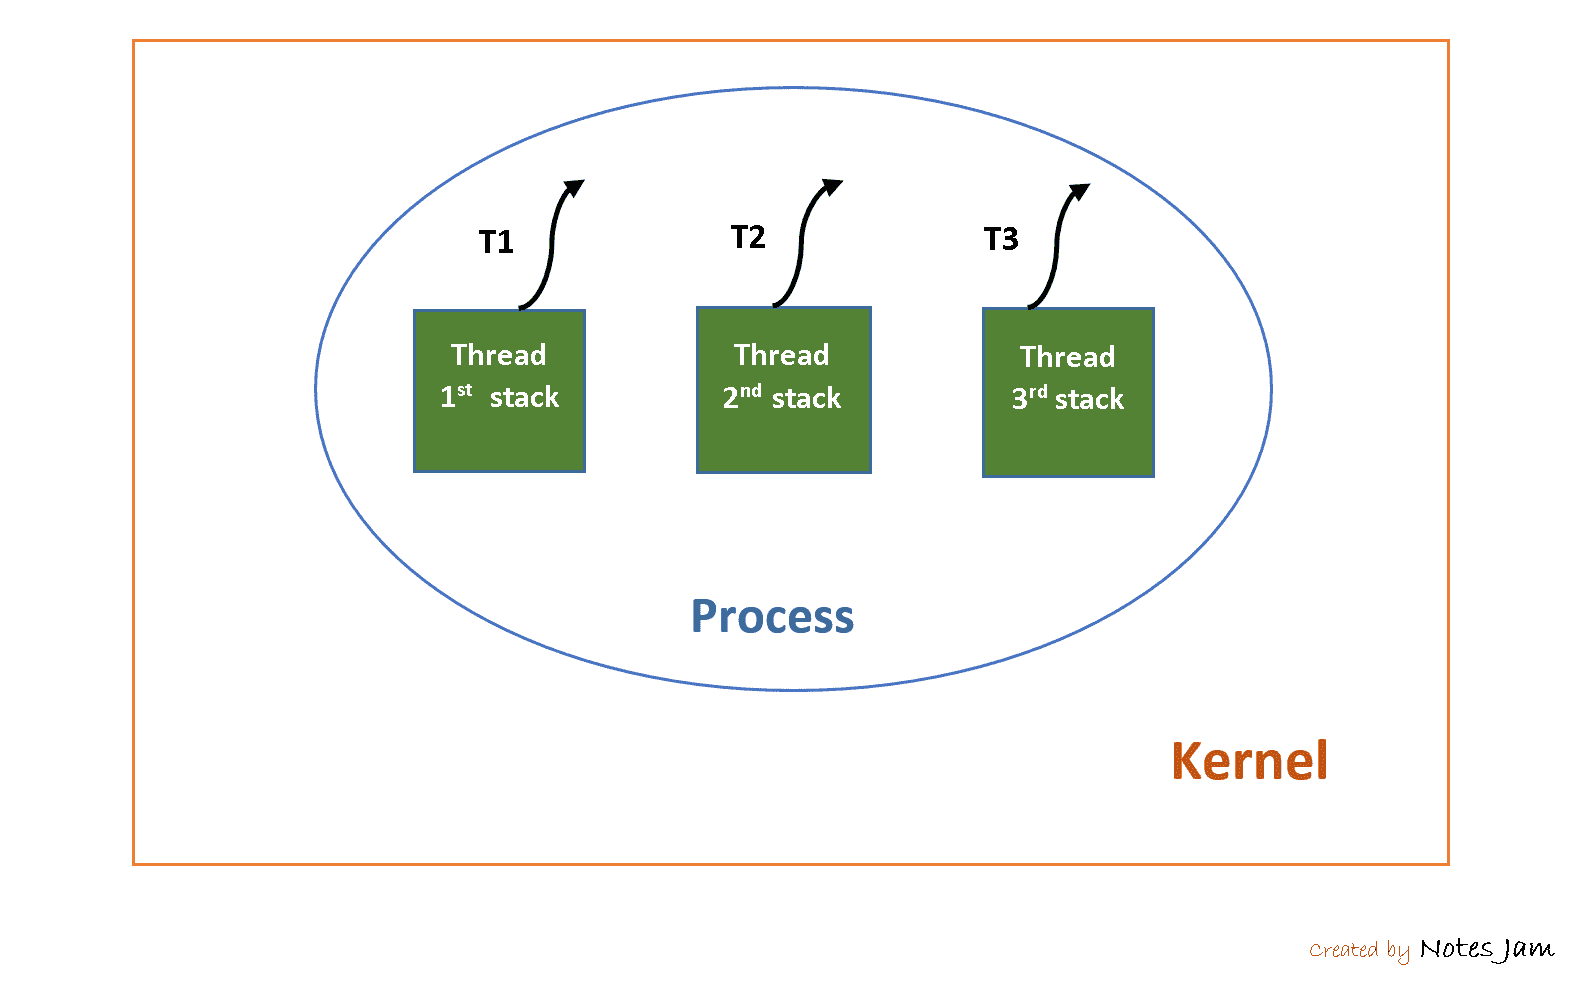 Threads in operating system